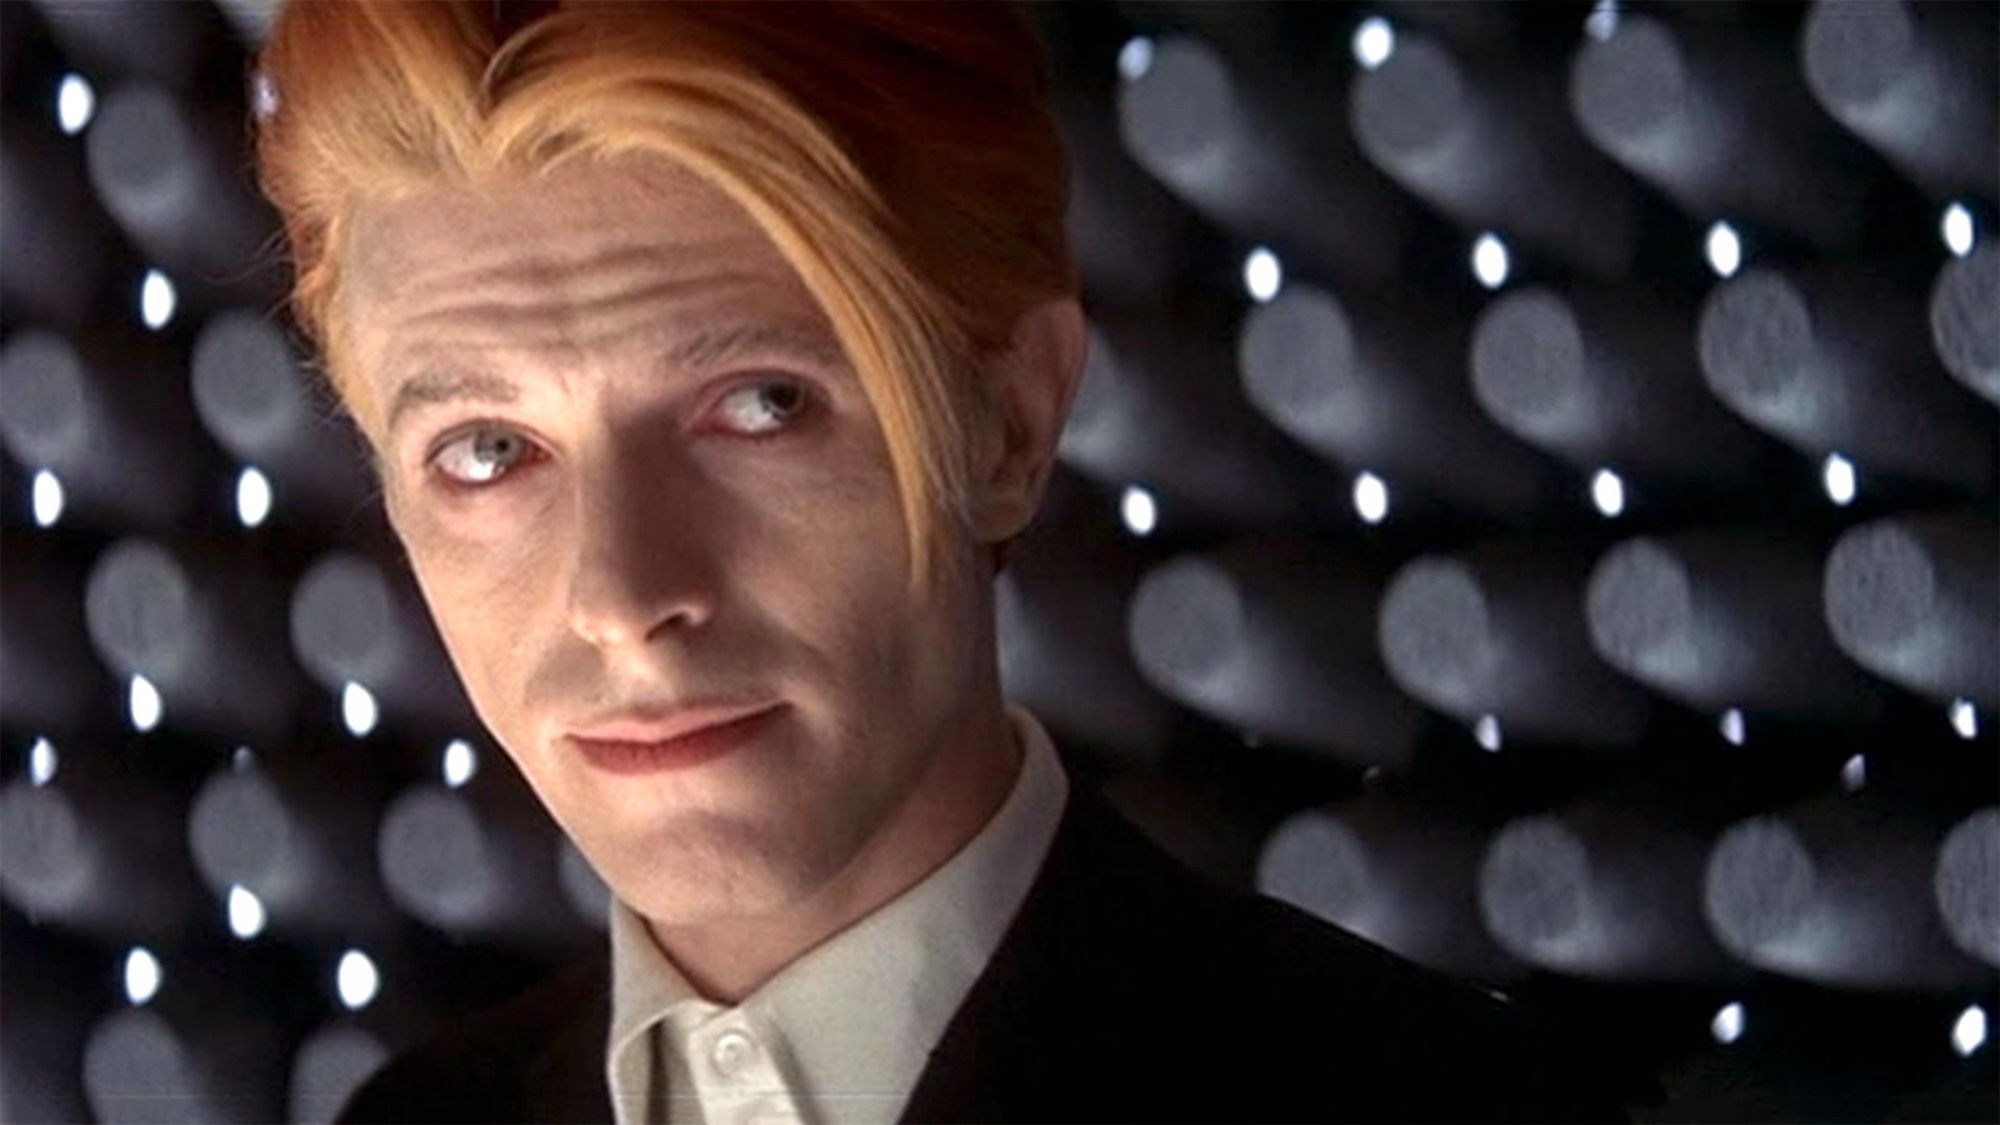 The Man Who Fell to Earth (1976) (screen grab) David Bowie CR: British Lion Films